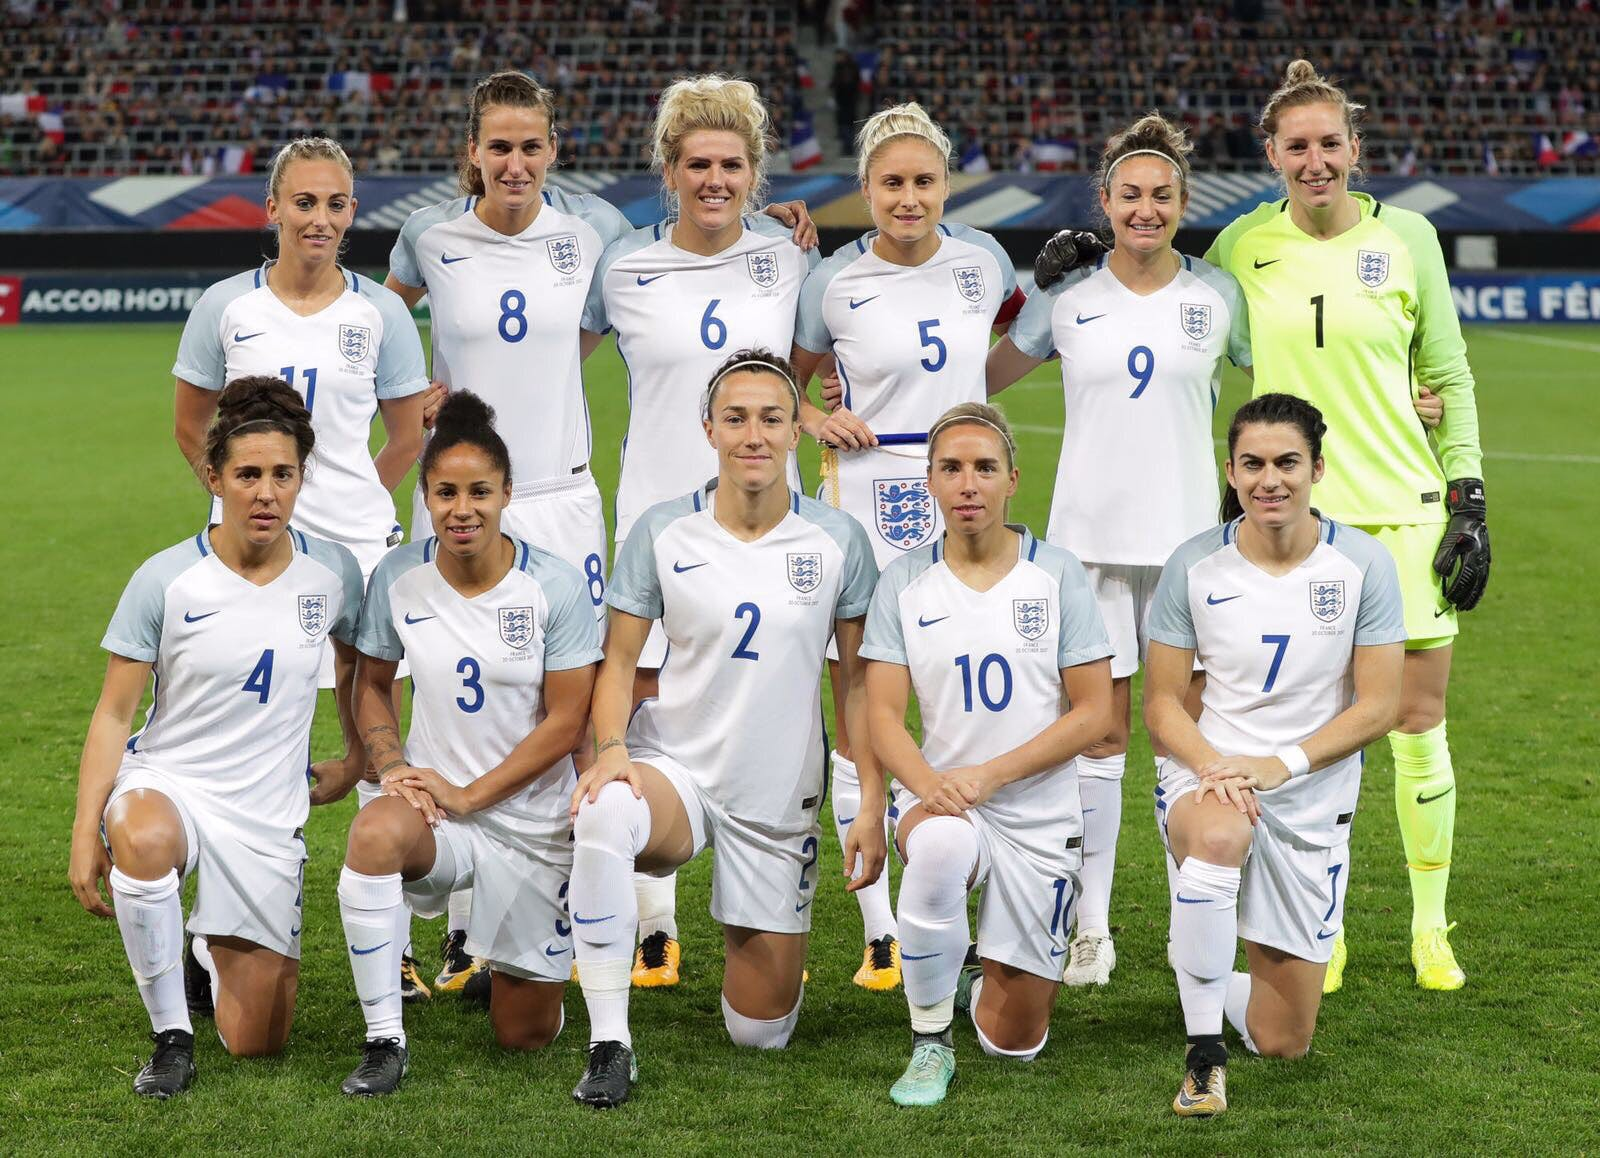 English women's national team